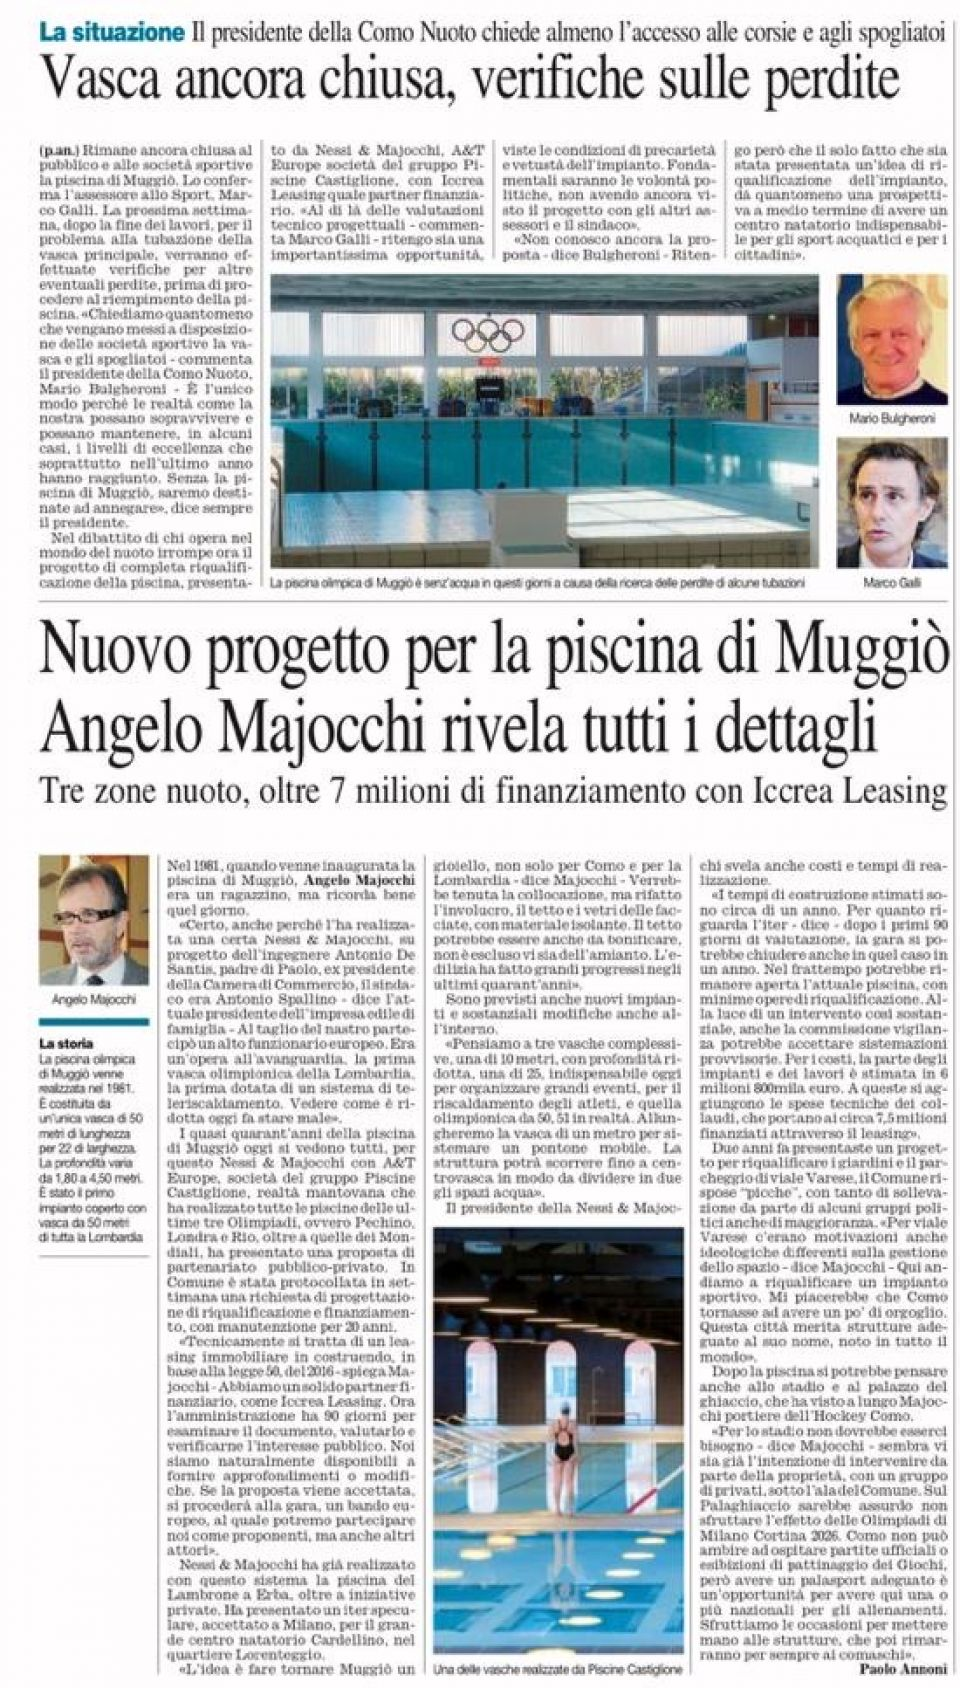 NEW PROJECT FOR THE POOL IN MUGGIÒ - ANGELO MAJOCCHI REVEALS ALL THE DETAILS